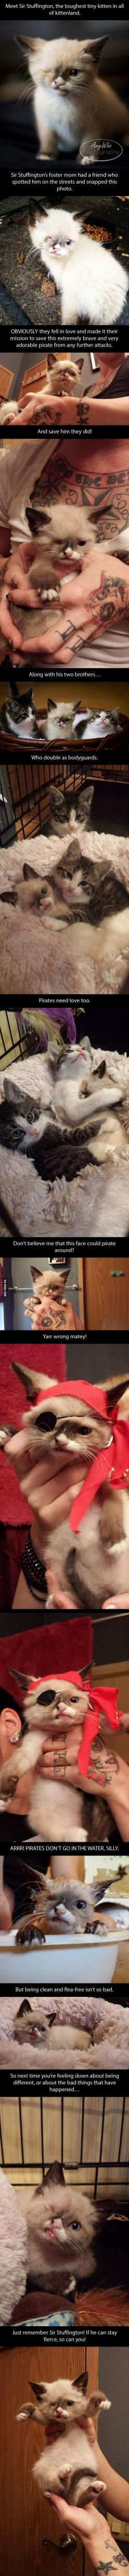 Adorable. You will want to Read this:) REALLY: Cutest Pirate, Sweet, My Heart, Pirate Kitten, Animal